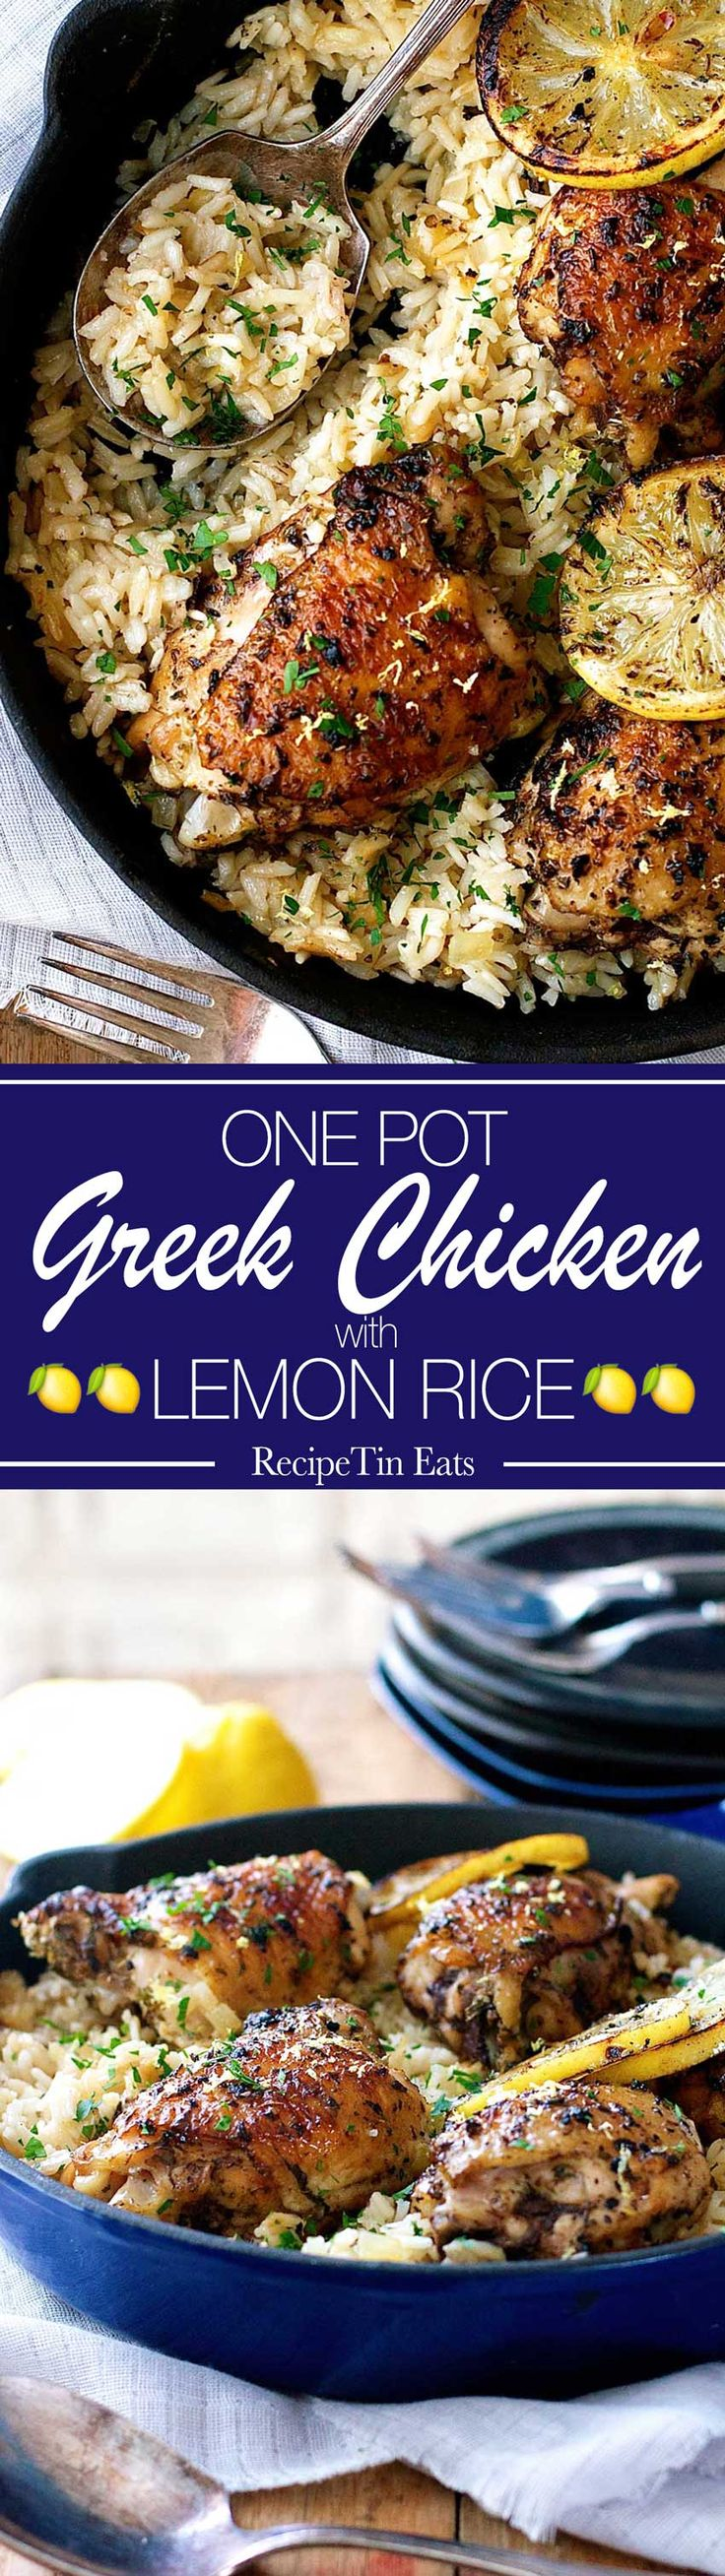 This Greek Chicken Recipe is made with an incredible lemon rice which is all made in ONE POT! www.recipetineats.com